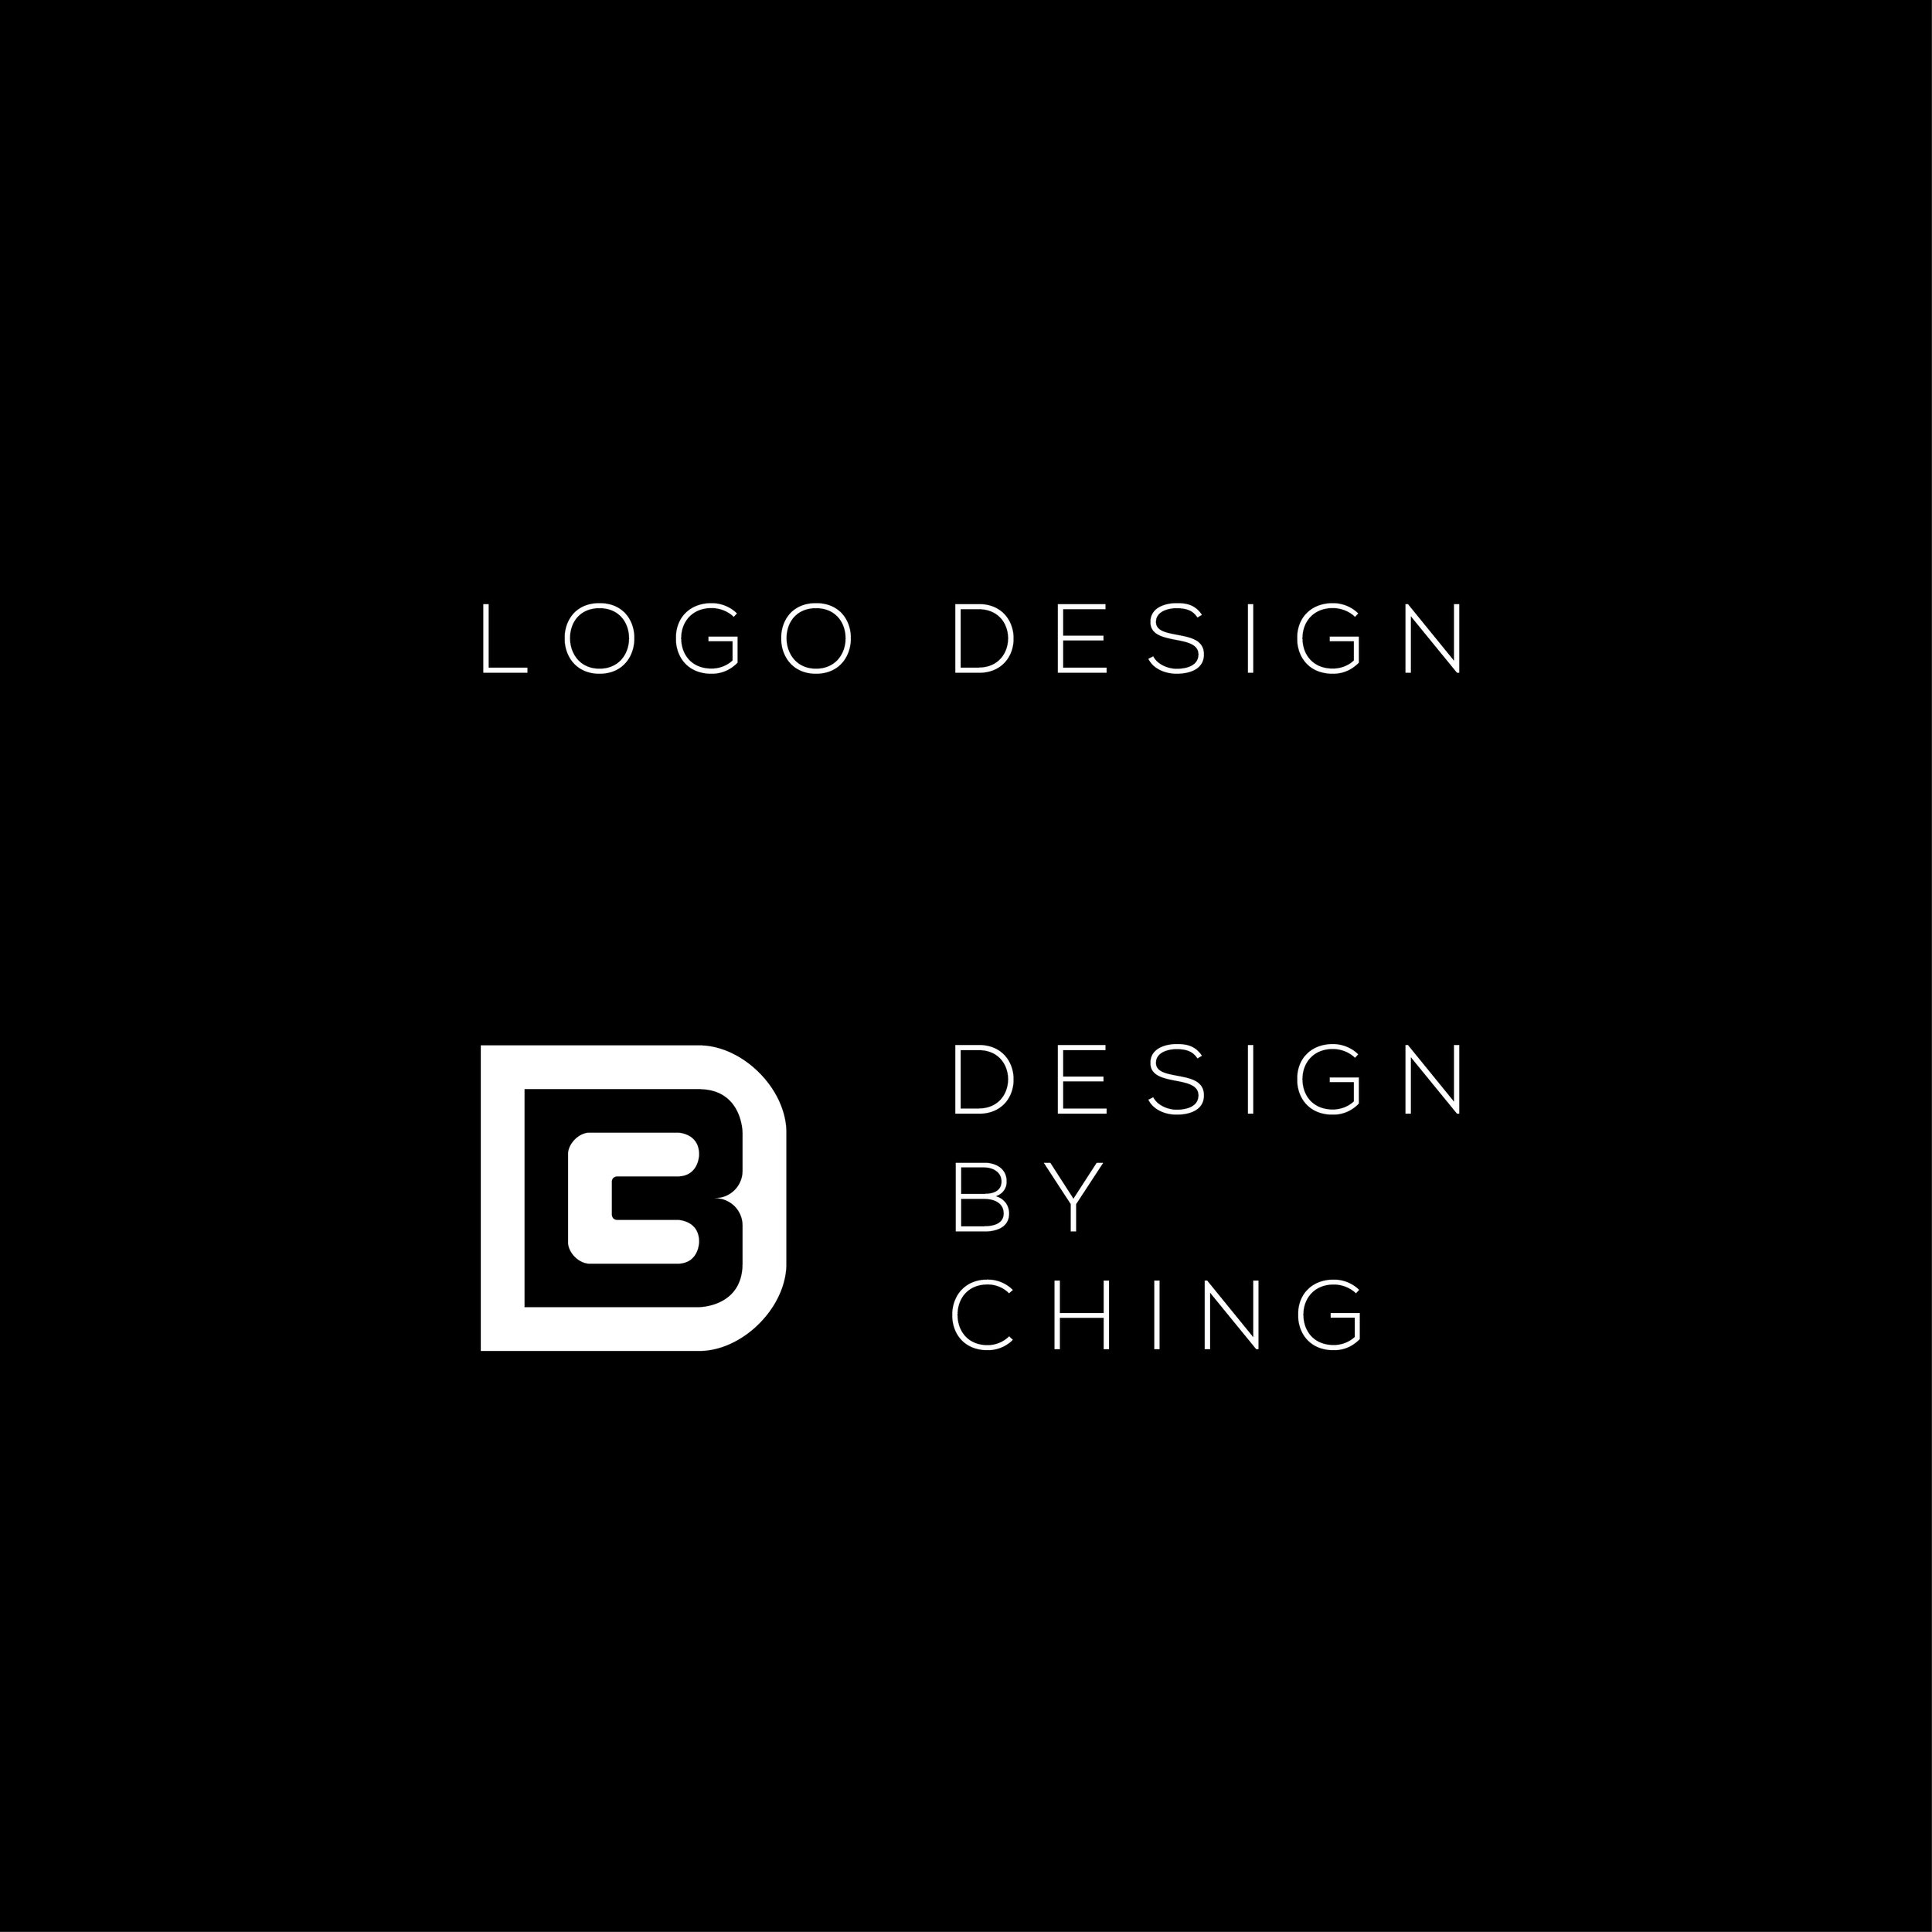 logo design_design by ching-01.jpg